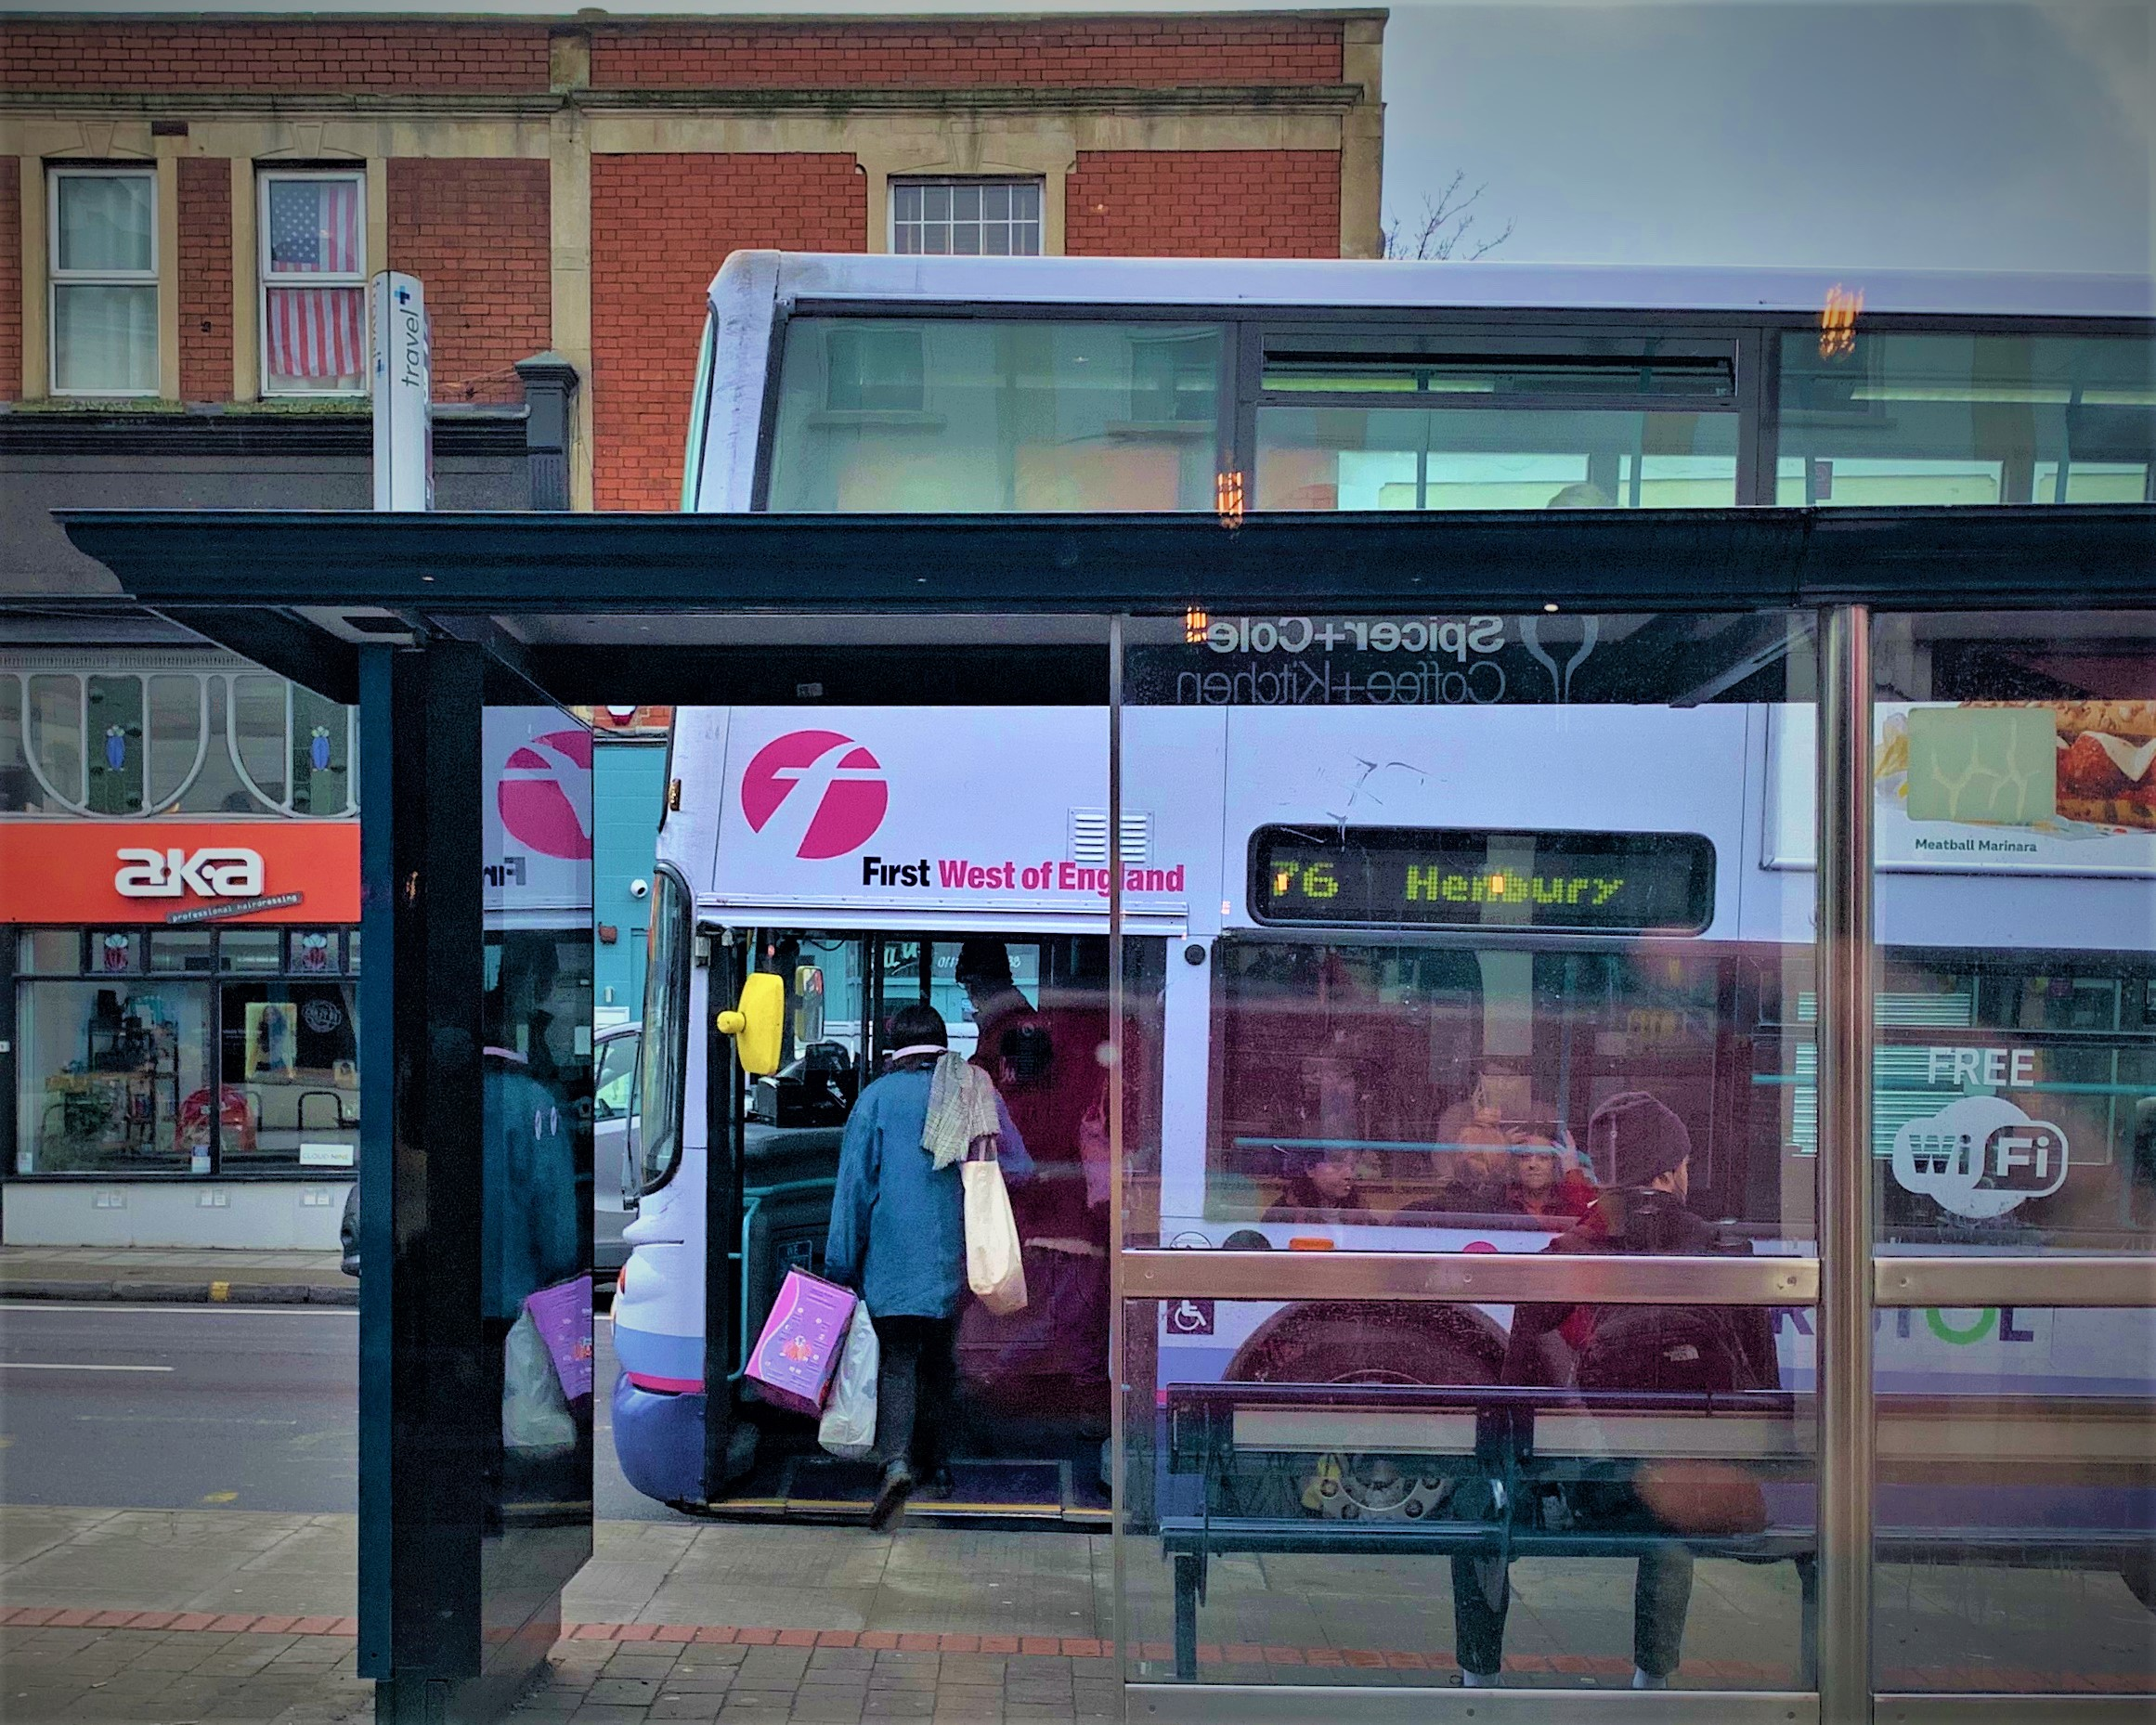 Bus stop - 76 to Henbury